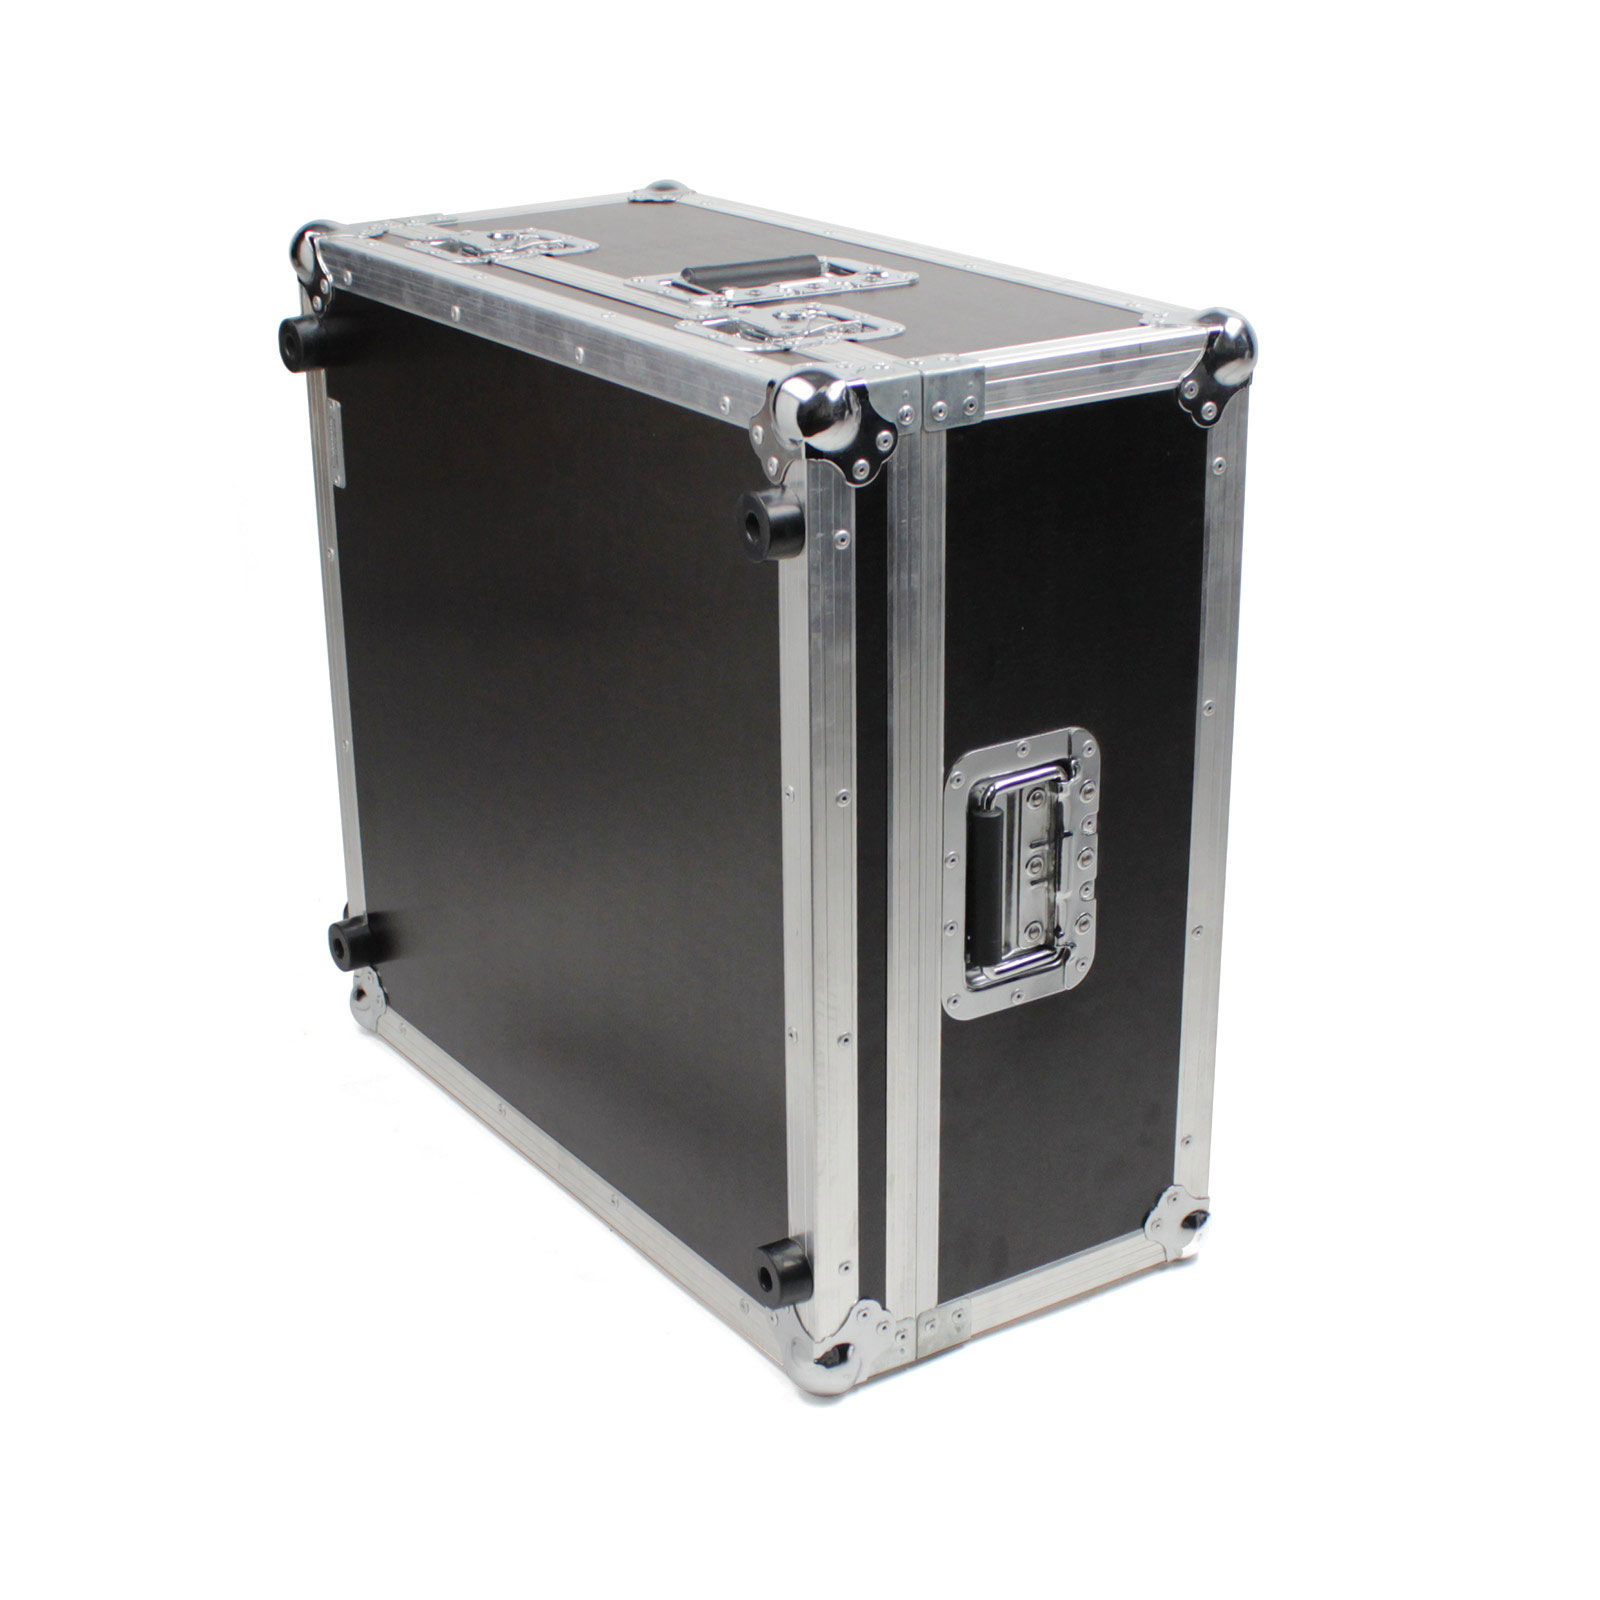 FLIGHT CASE 54,5x59,5x28,5cm